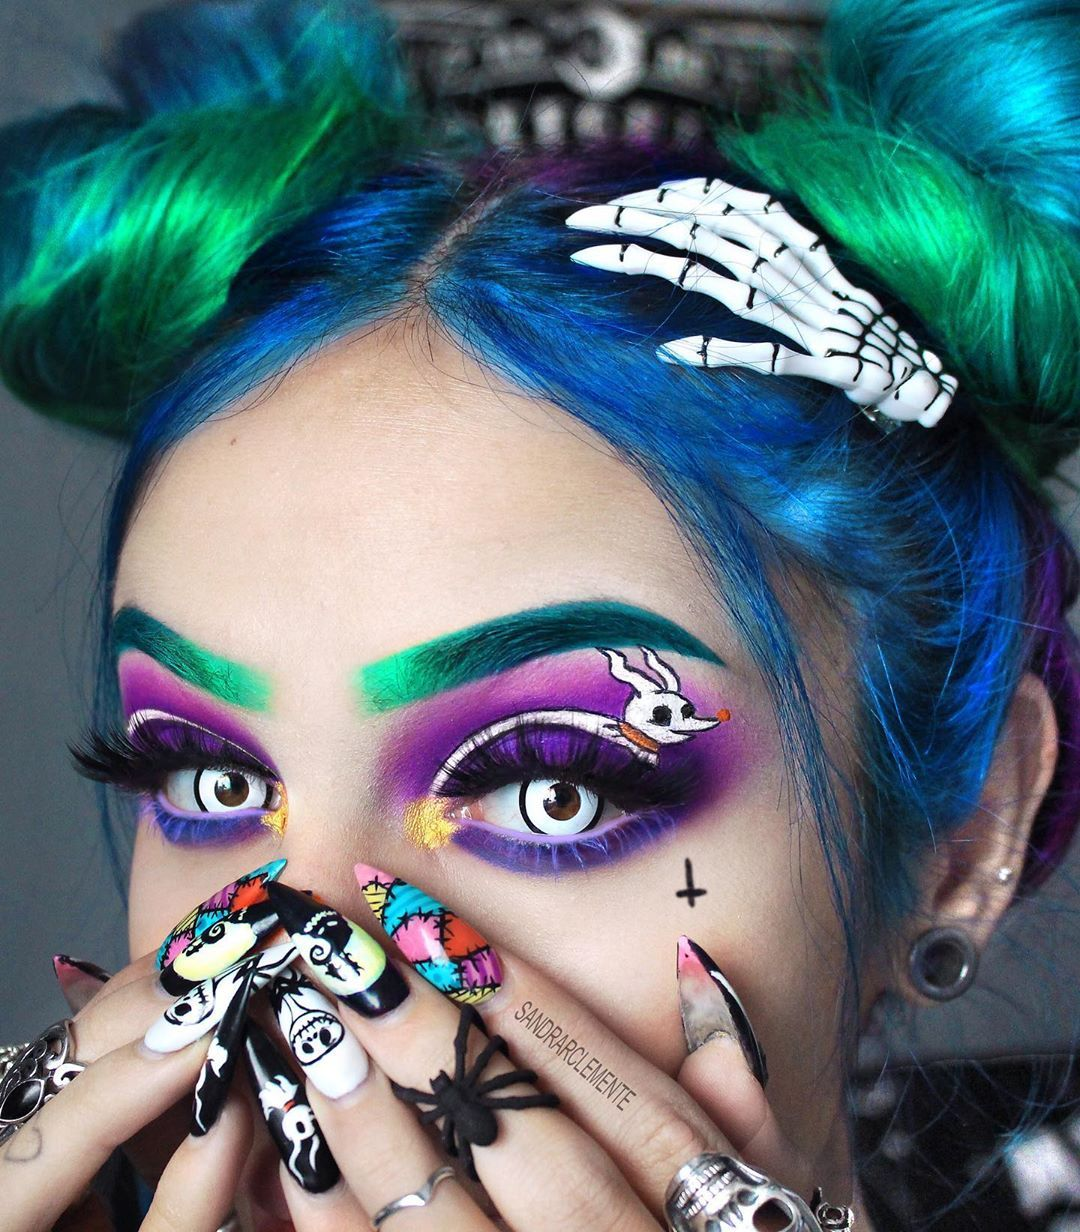 Nightmare Before Christmas Sandrarclemente makeup and